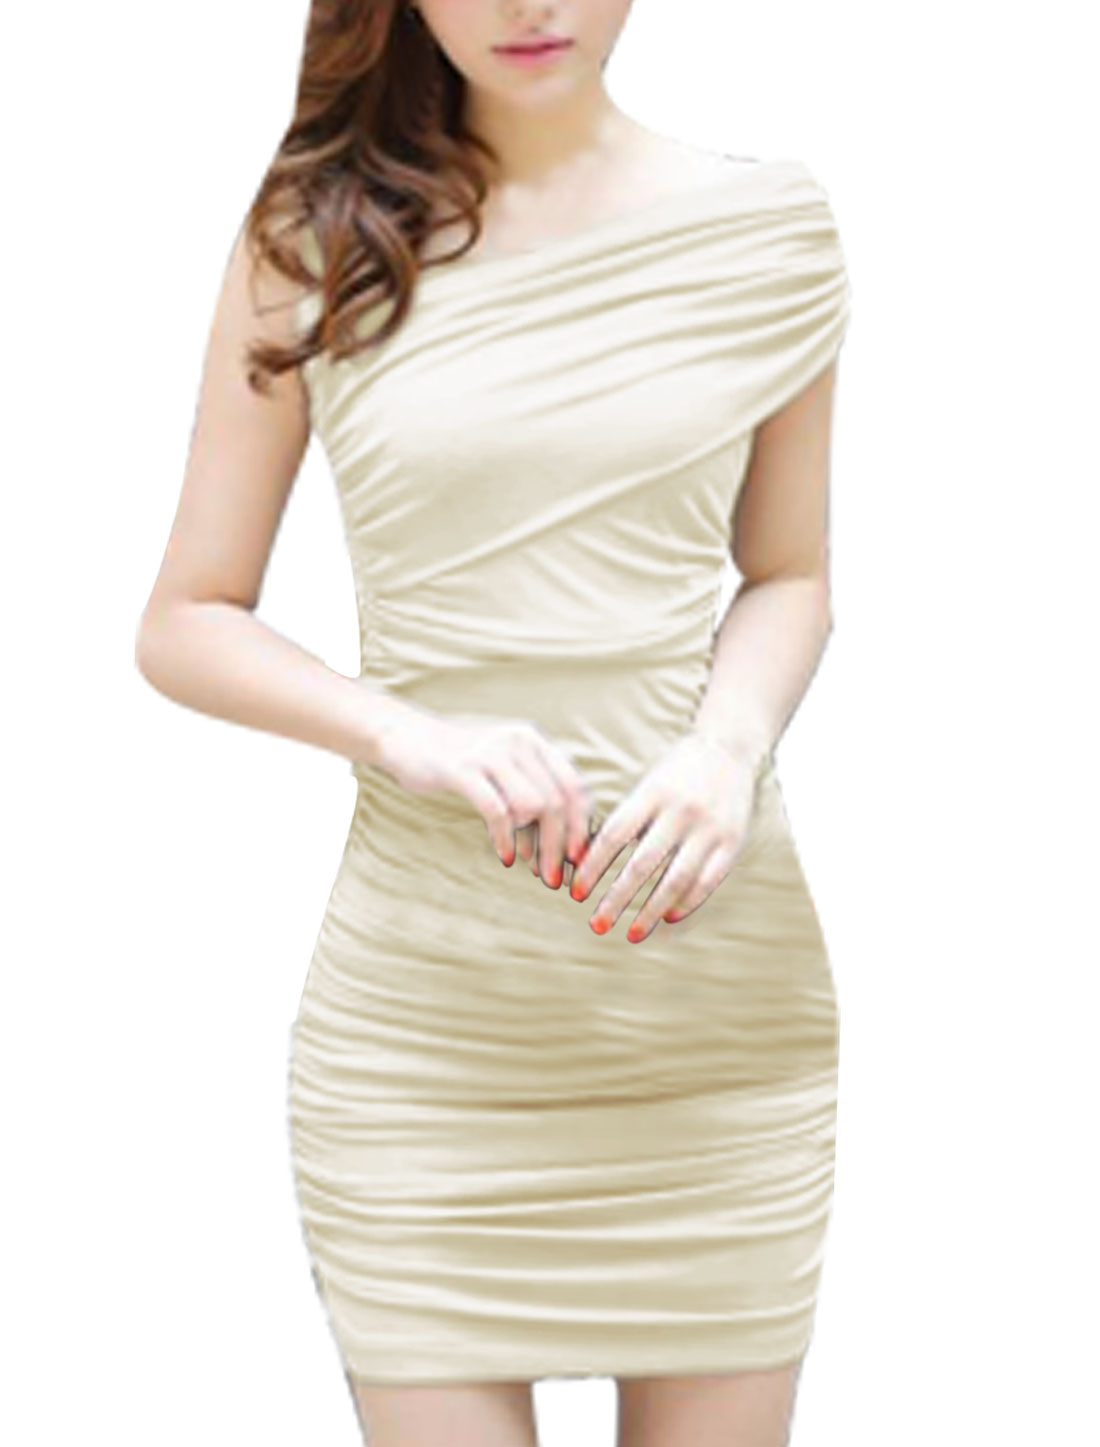 Women Asym Neck Wrapped Chest Elastic Back Stretchy Cocktail Beige Dress XS